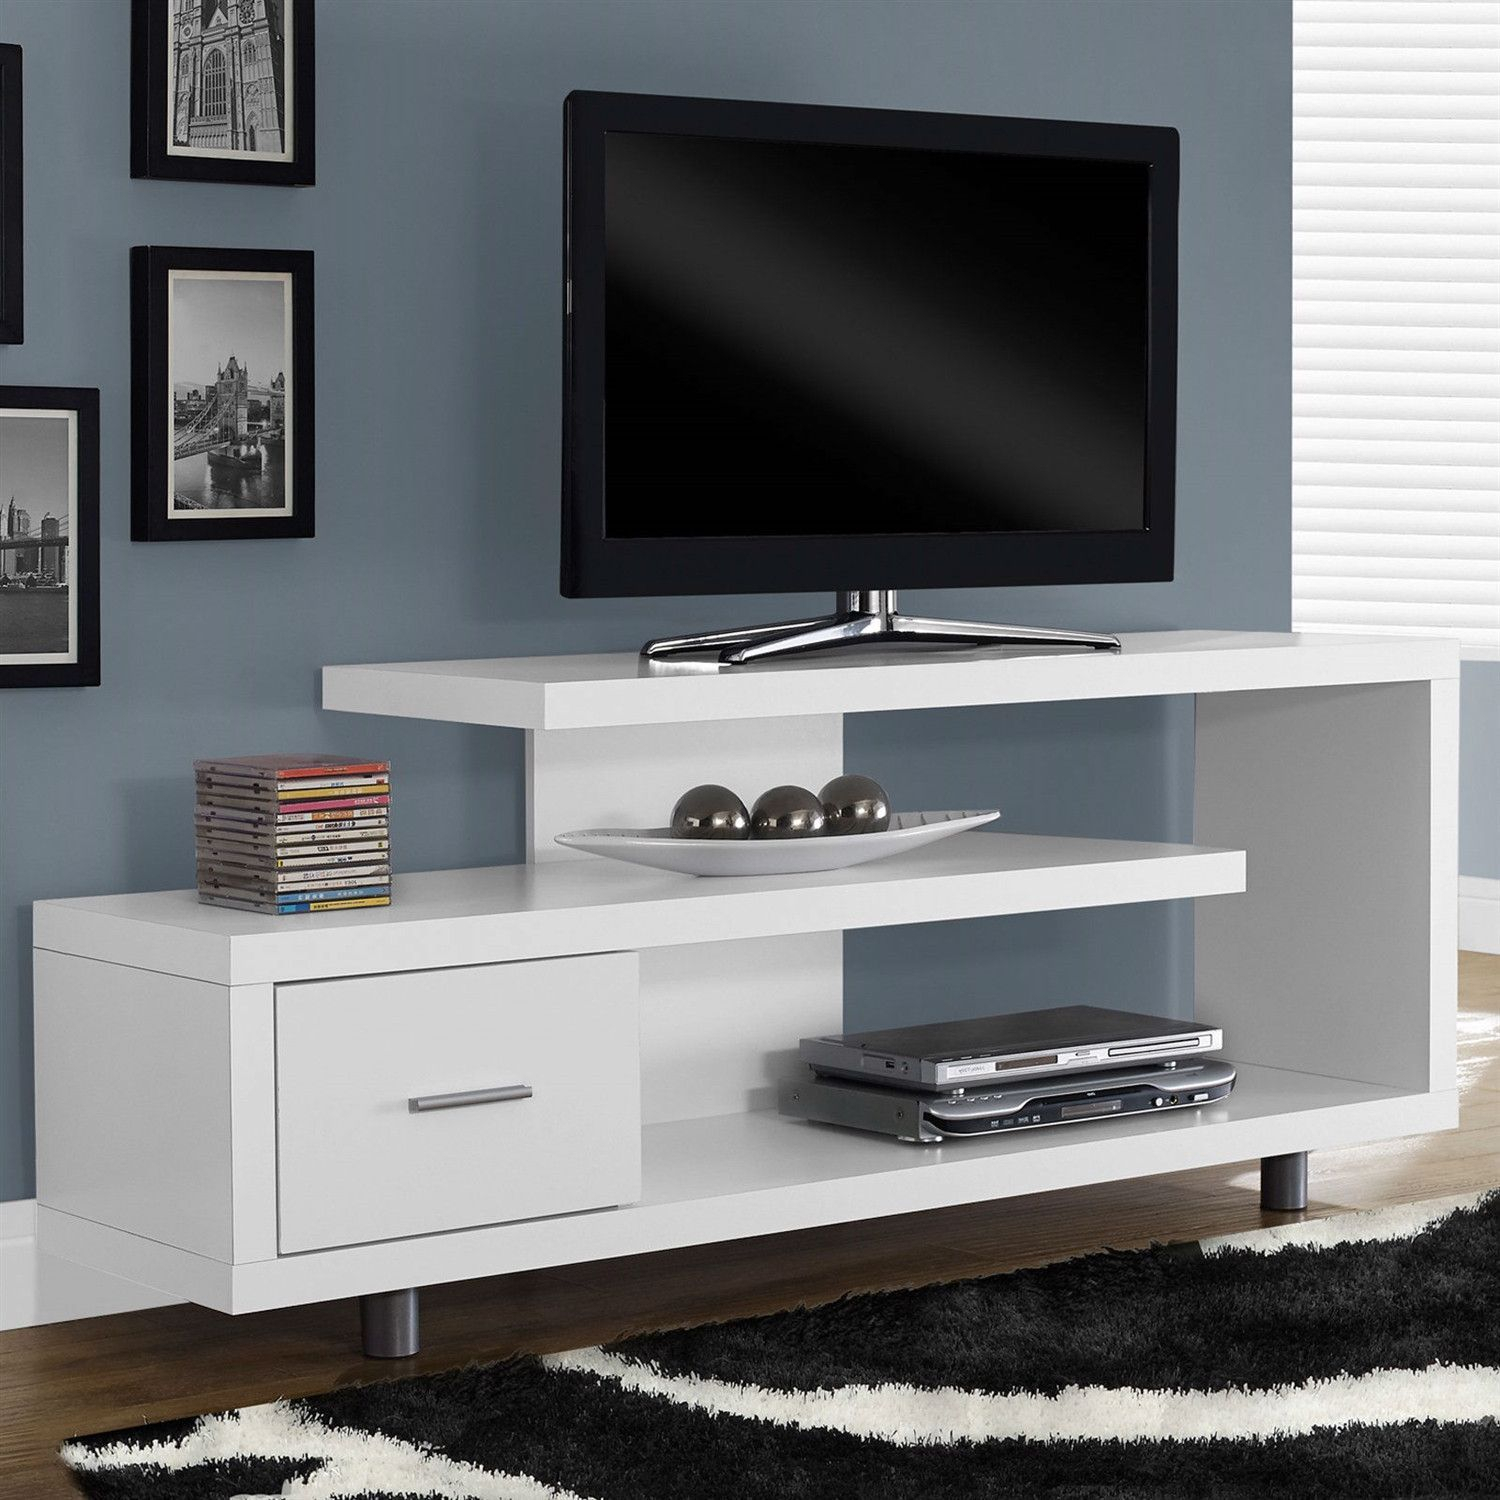 White Modern Tv Stand – Fits Up To 60 Inch Flat Screen Tv Throughout Valencia 60 Inch Tv Stands (View 17 of 30)